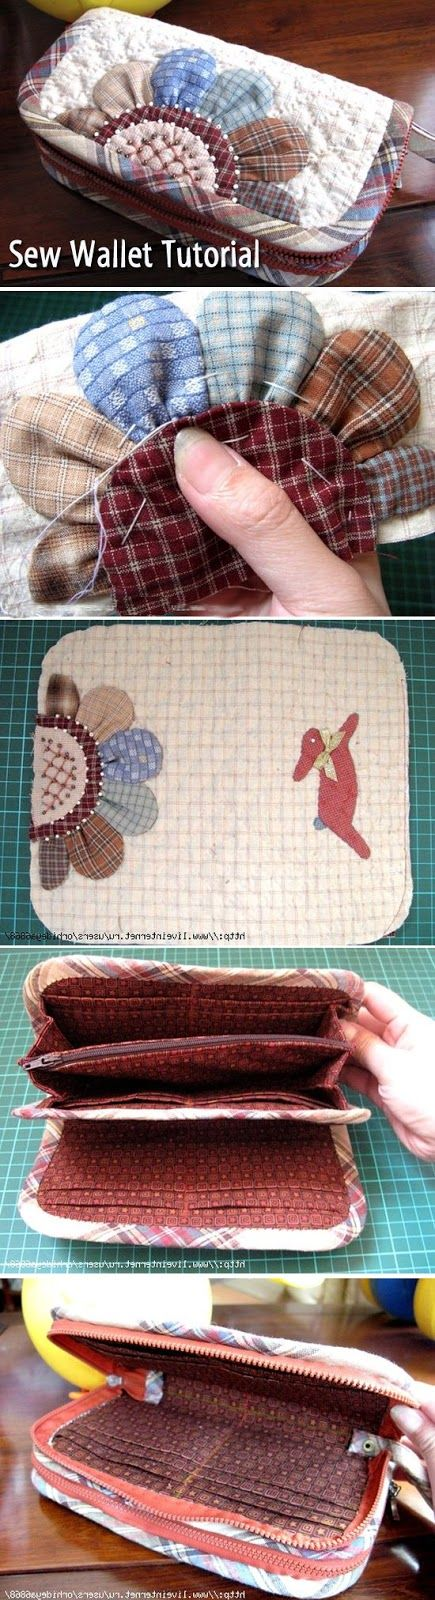 Step by step instructions for sewing a small purse or wallet. www.handmadiya.co...